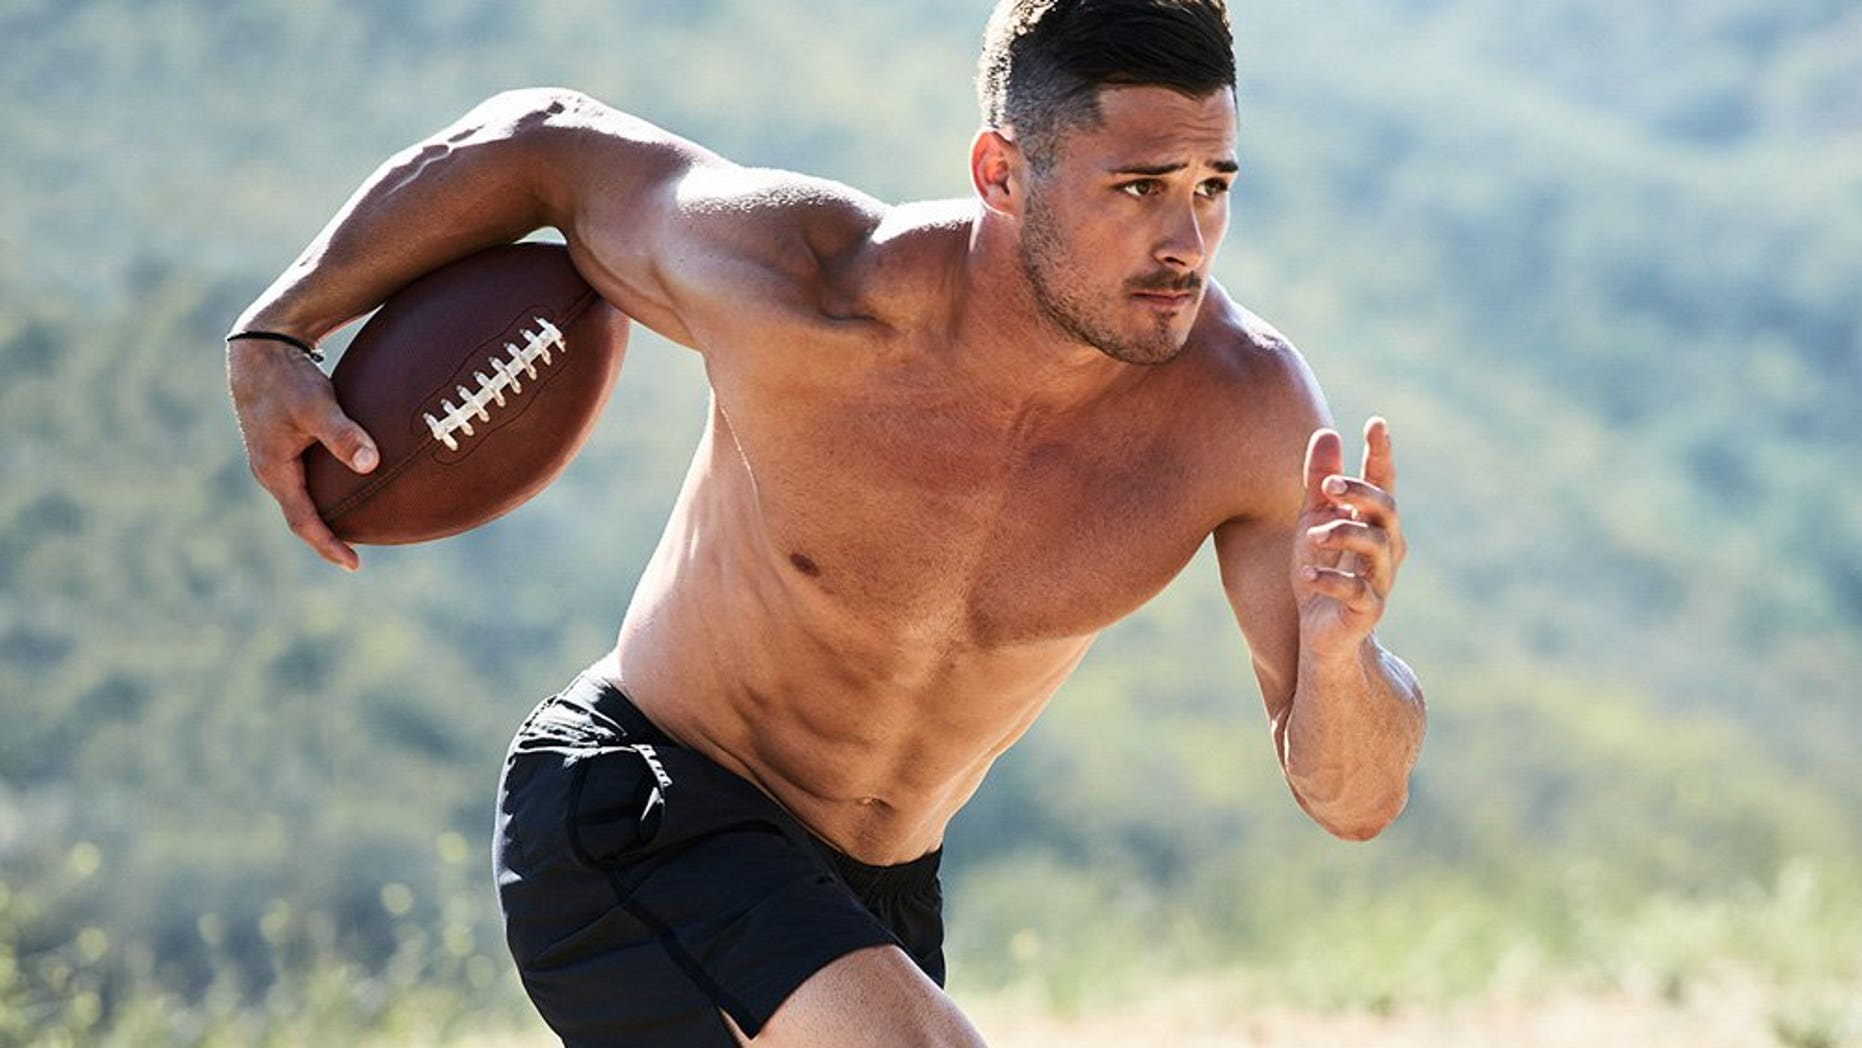 Danny Amendola (Men's Health/Peter Yang)